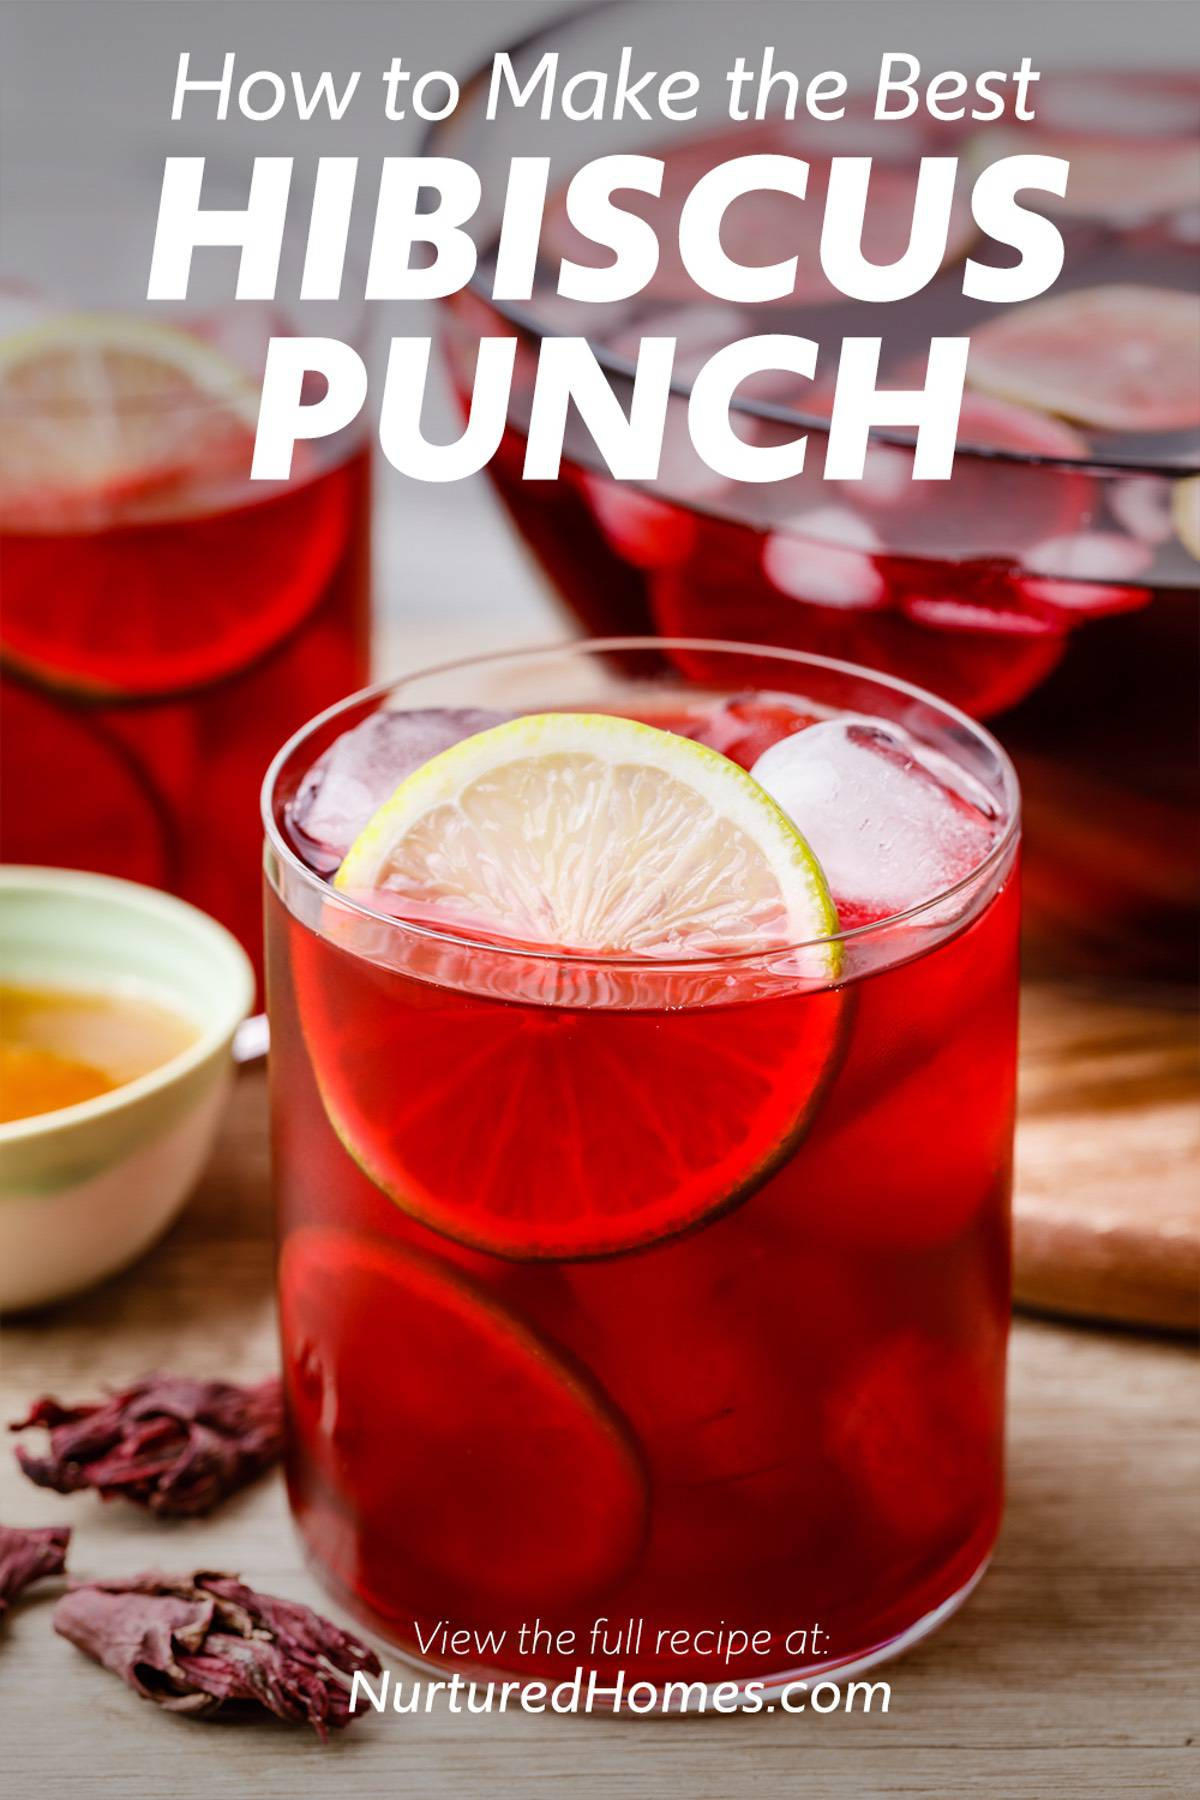 How to Make the Best Hibiscus Punch